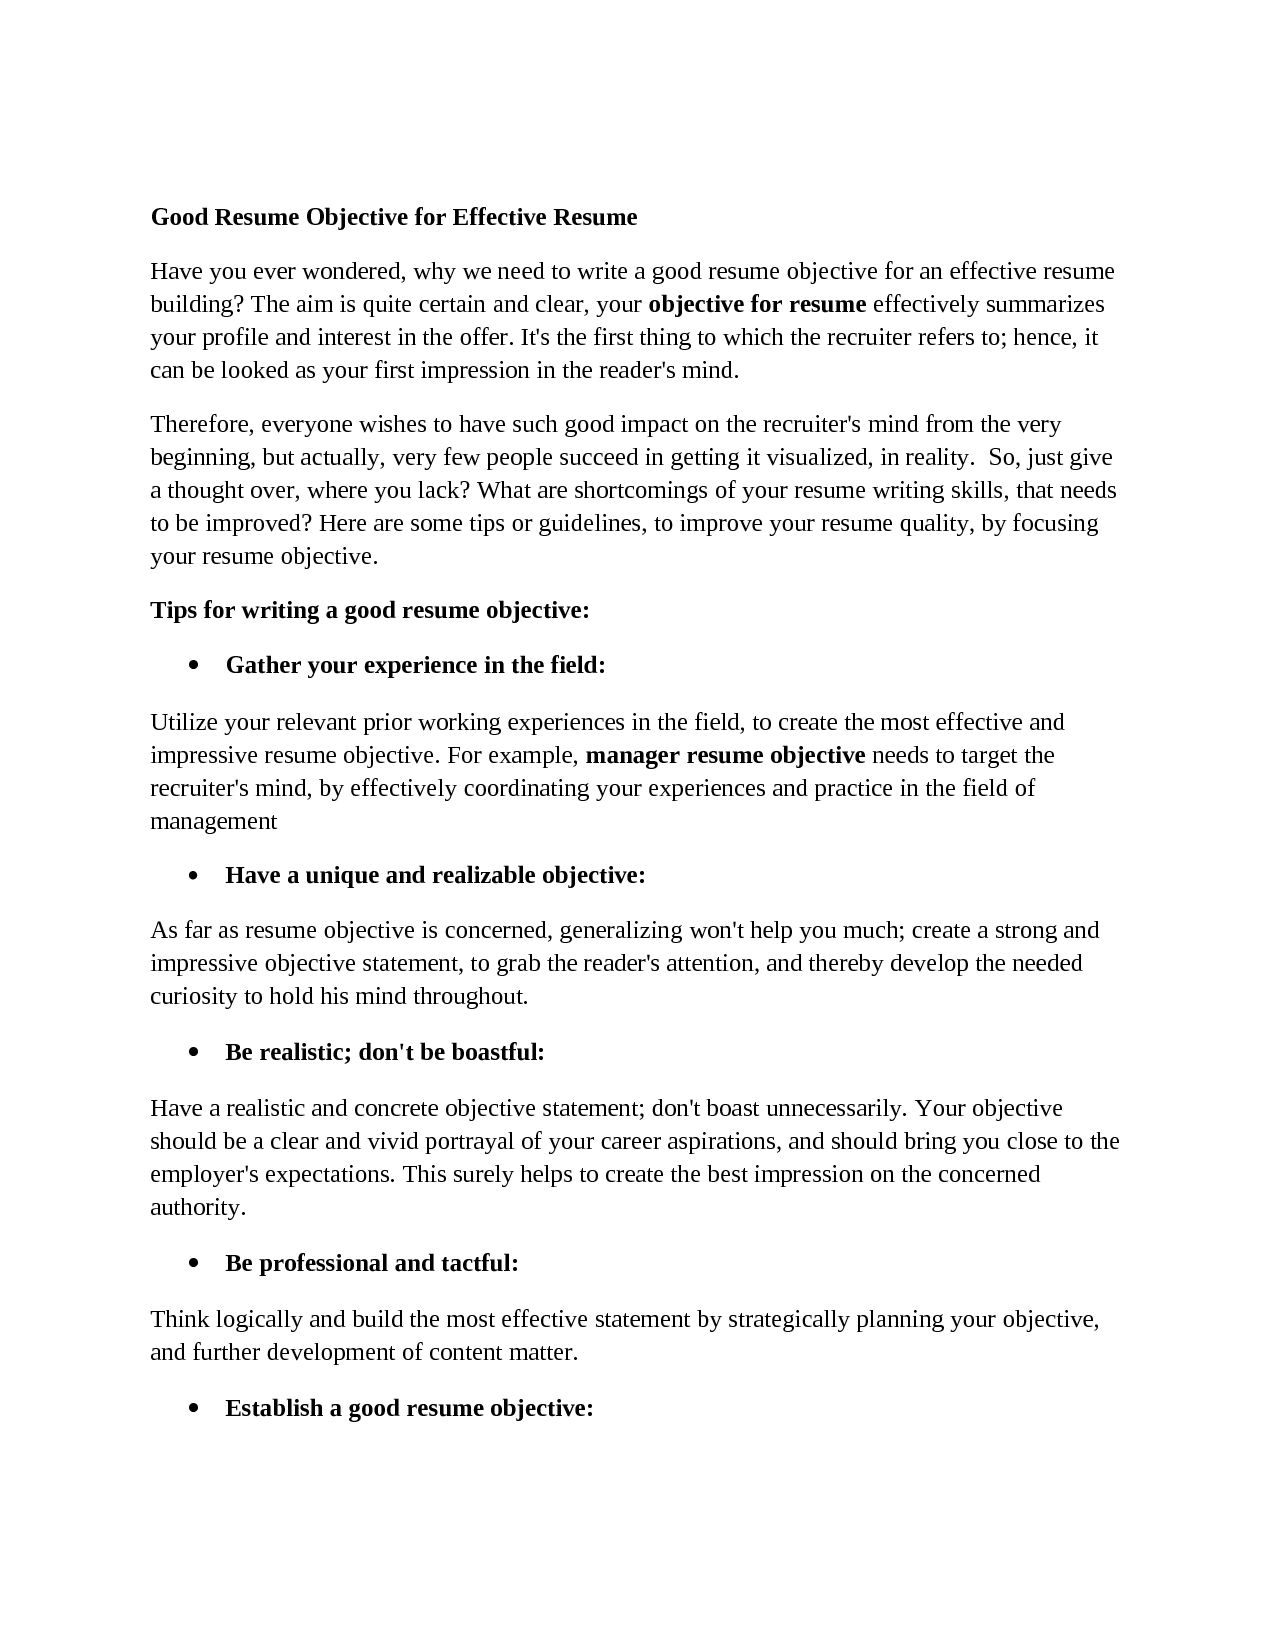 Dissertation Writing A Research Journey Guidelines For Writing